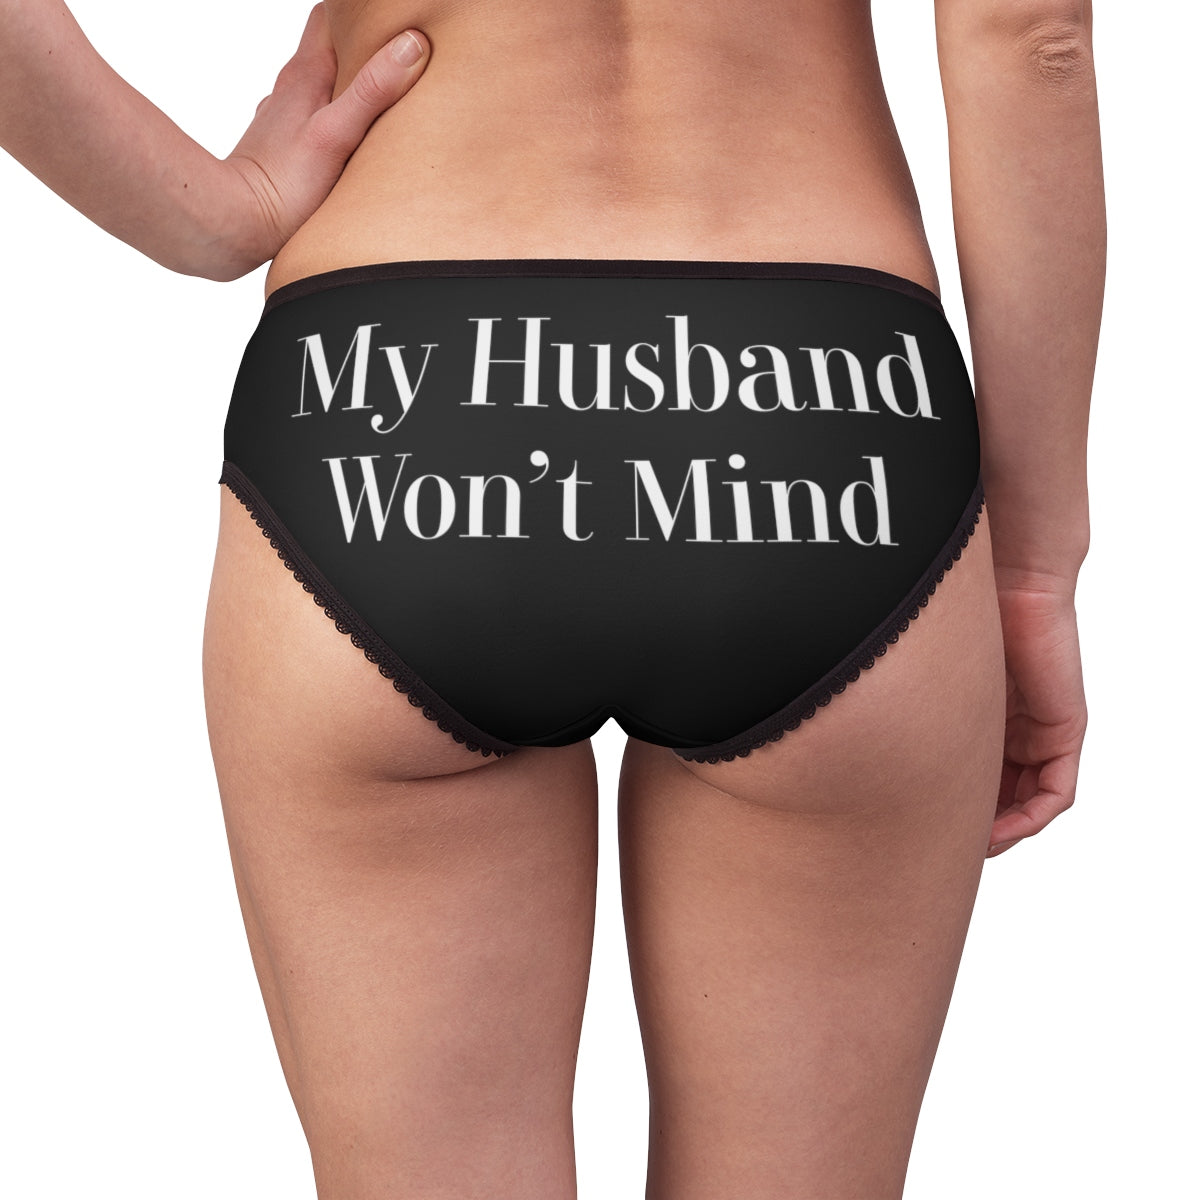 My Husband Won't Mind Hotwife Swinger Women's Briefs